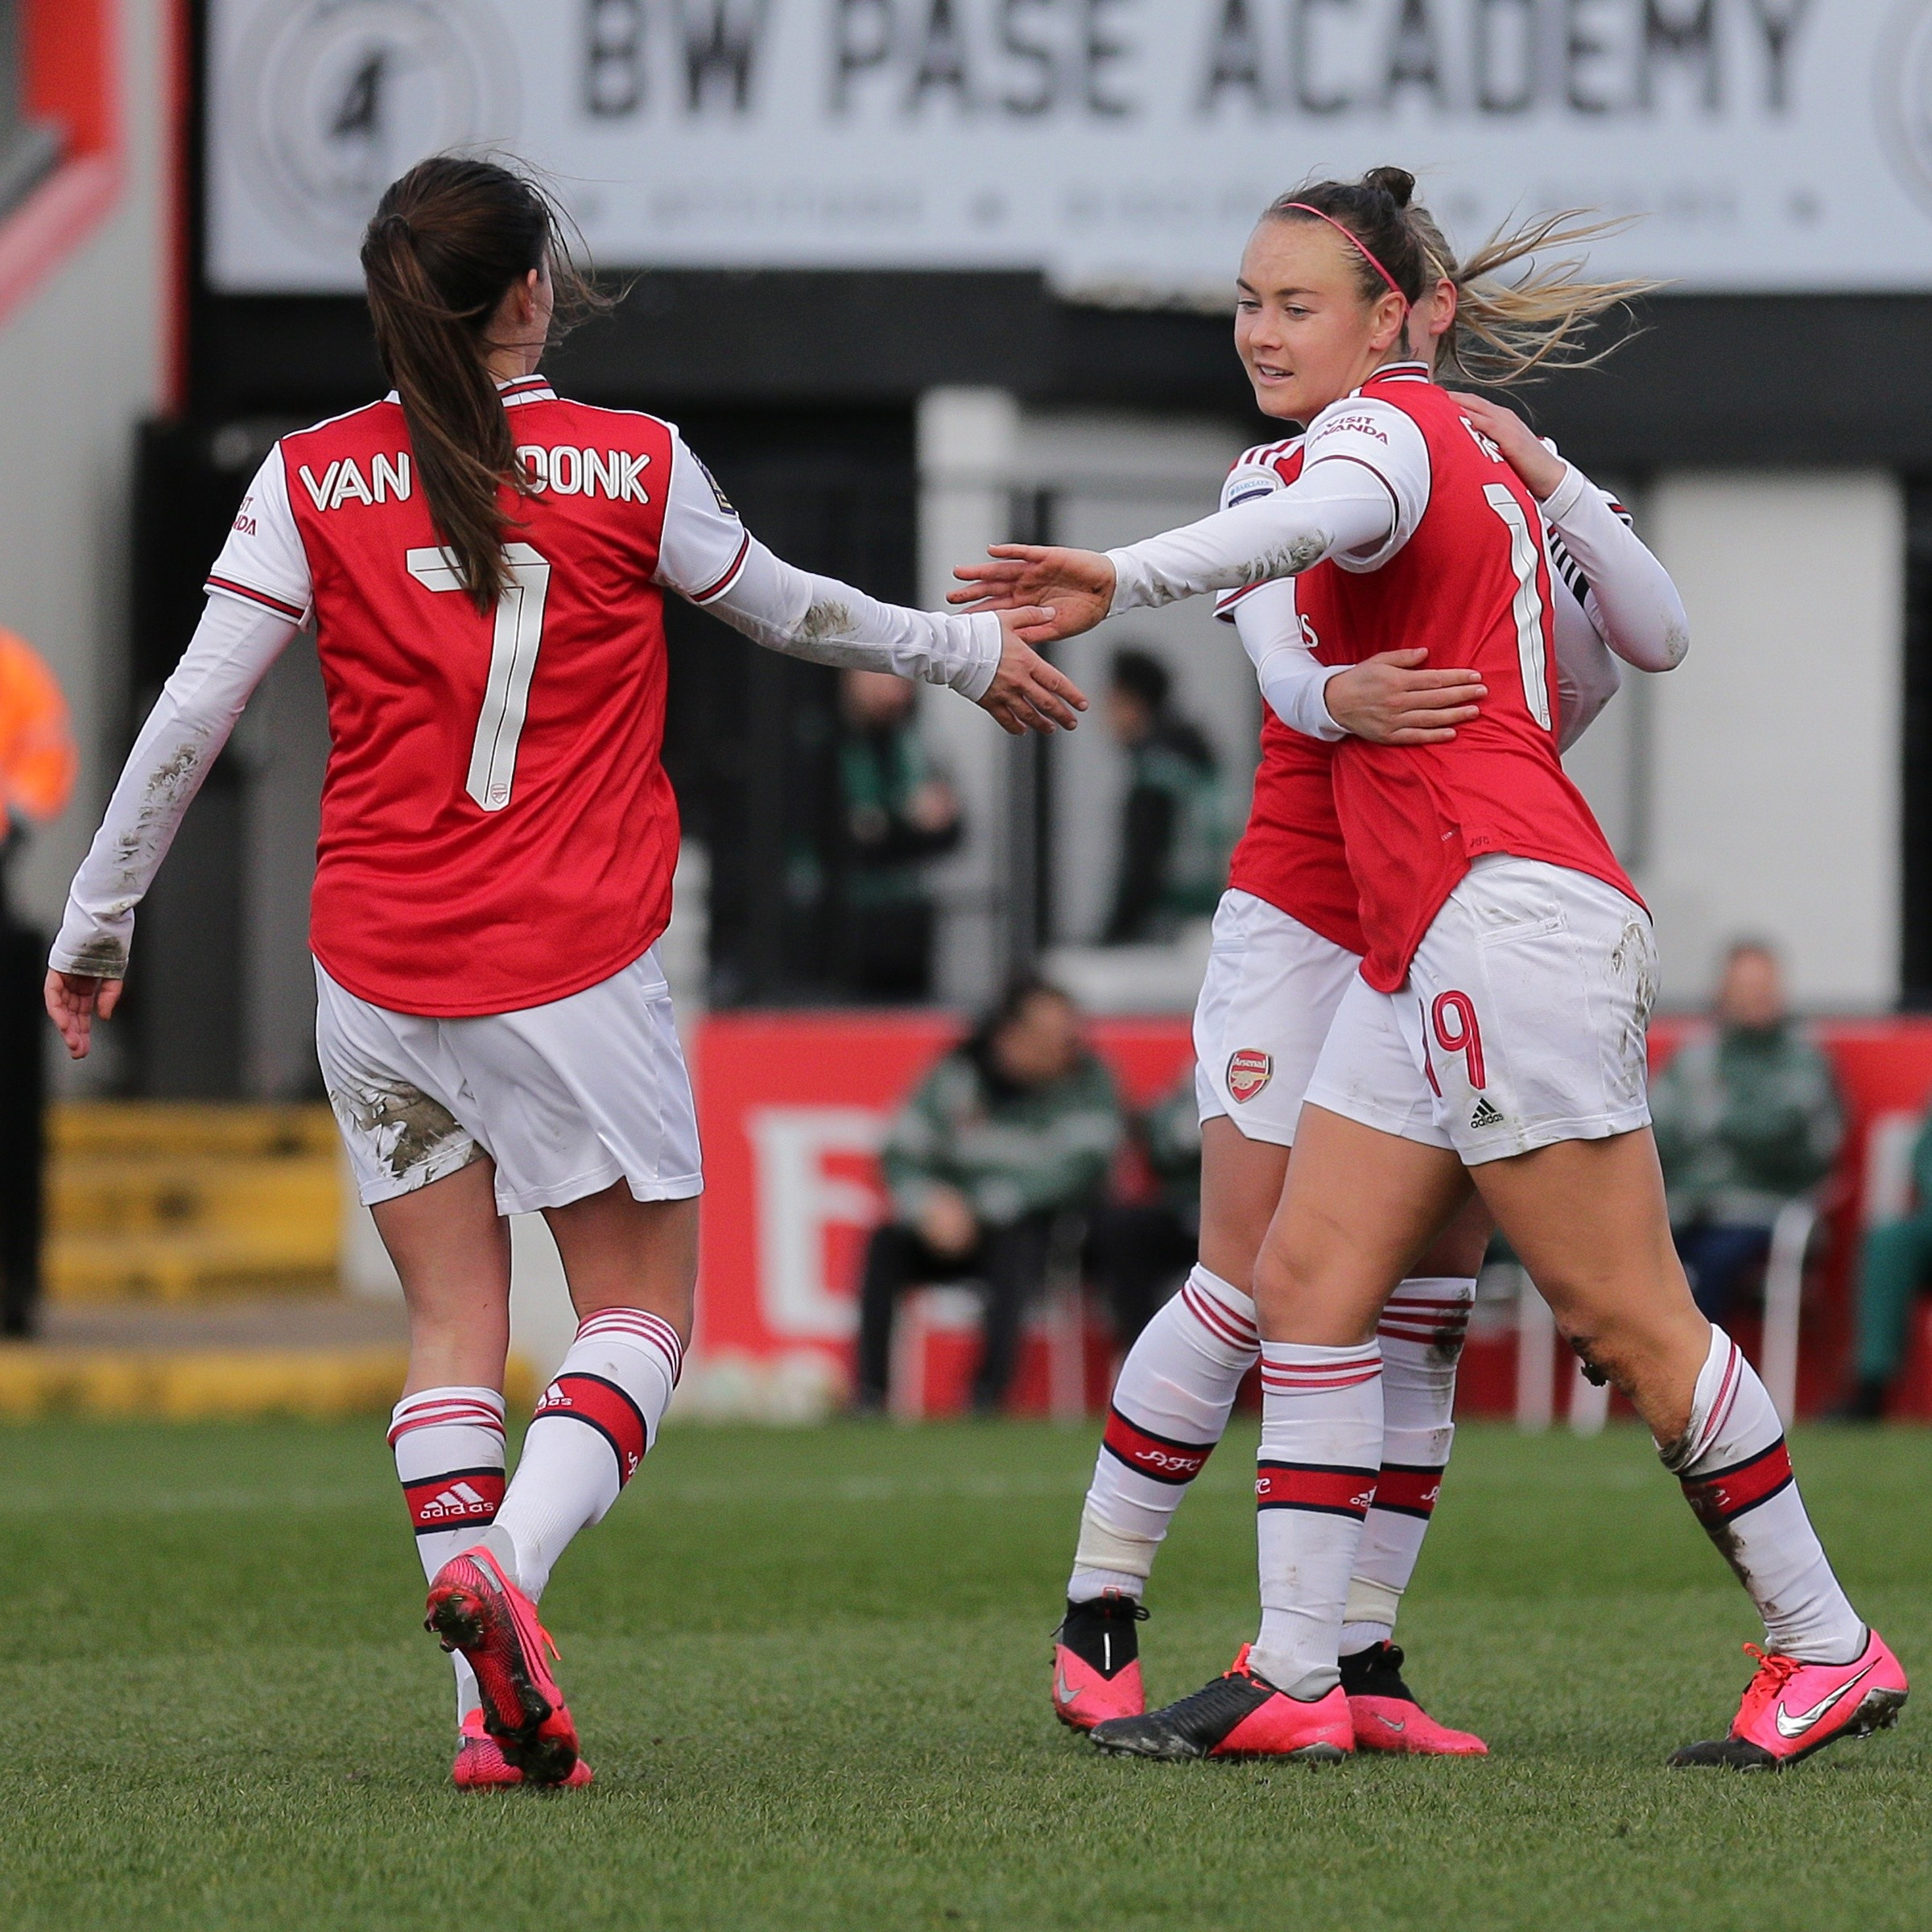 Caitlin Foord and Danielle van de Donk of Arsenal Women during the FA Cup match vs Lewes FC Women